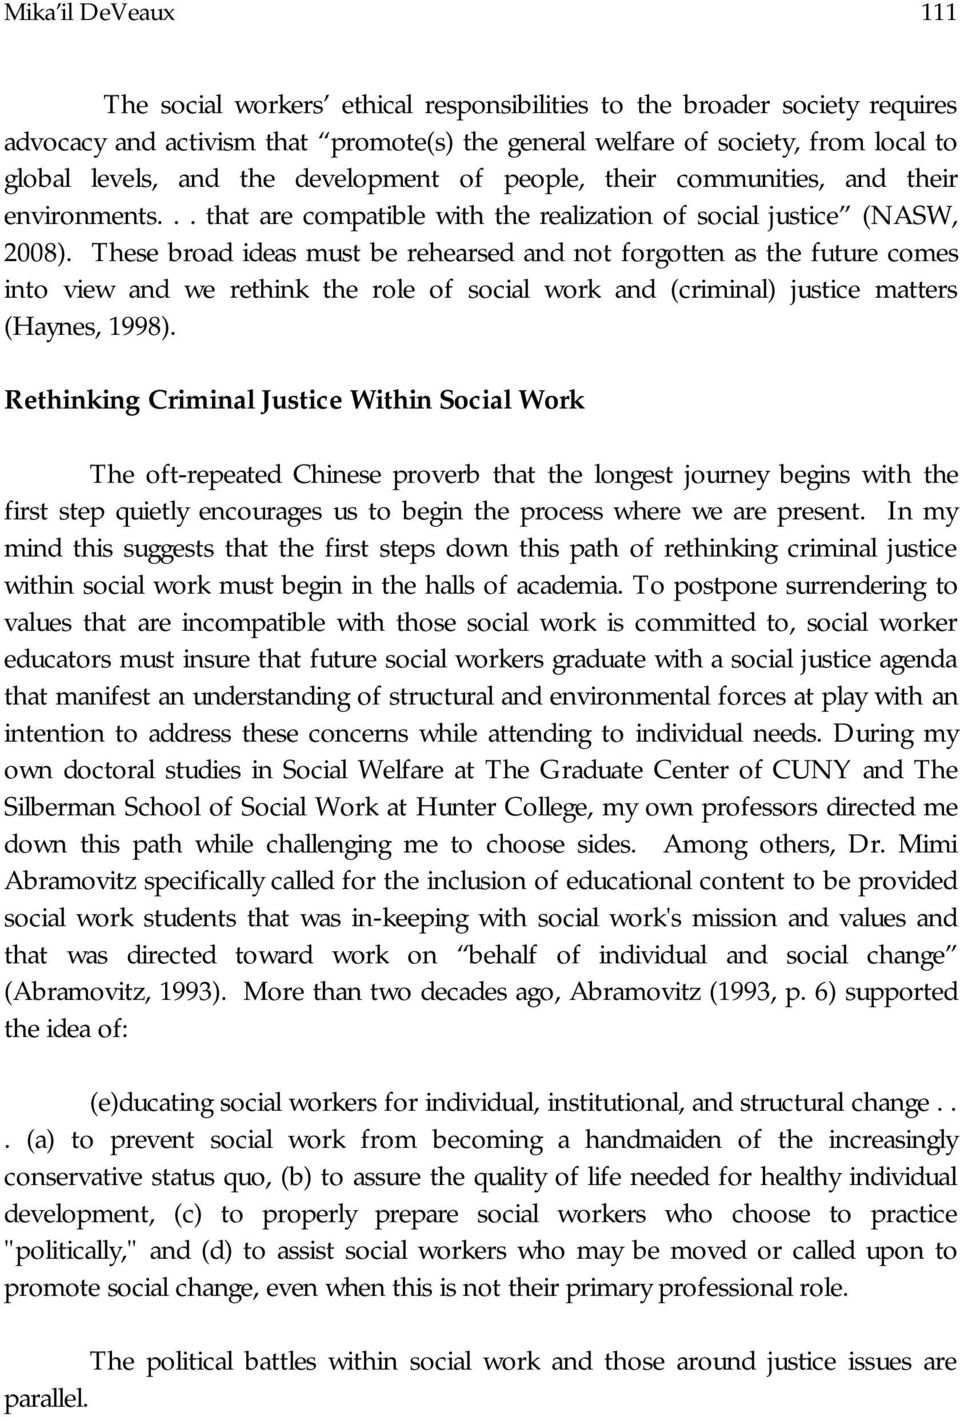 These broad ideas must be rehearsed and not forgotten as the future comes into view and we rethink the role of social work and (criminal) justice matters (Haynes, 1998).